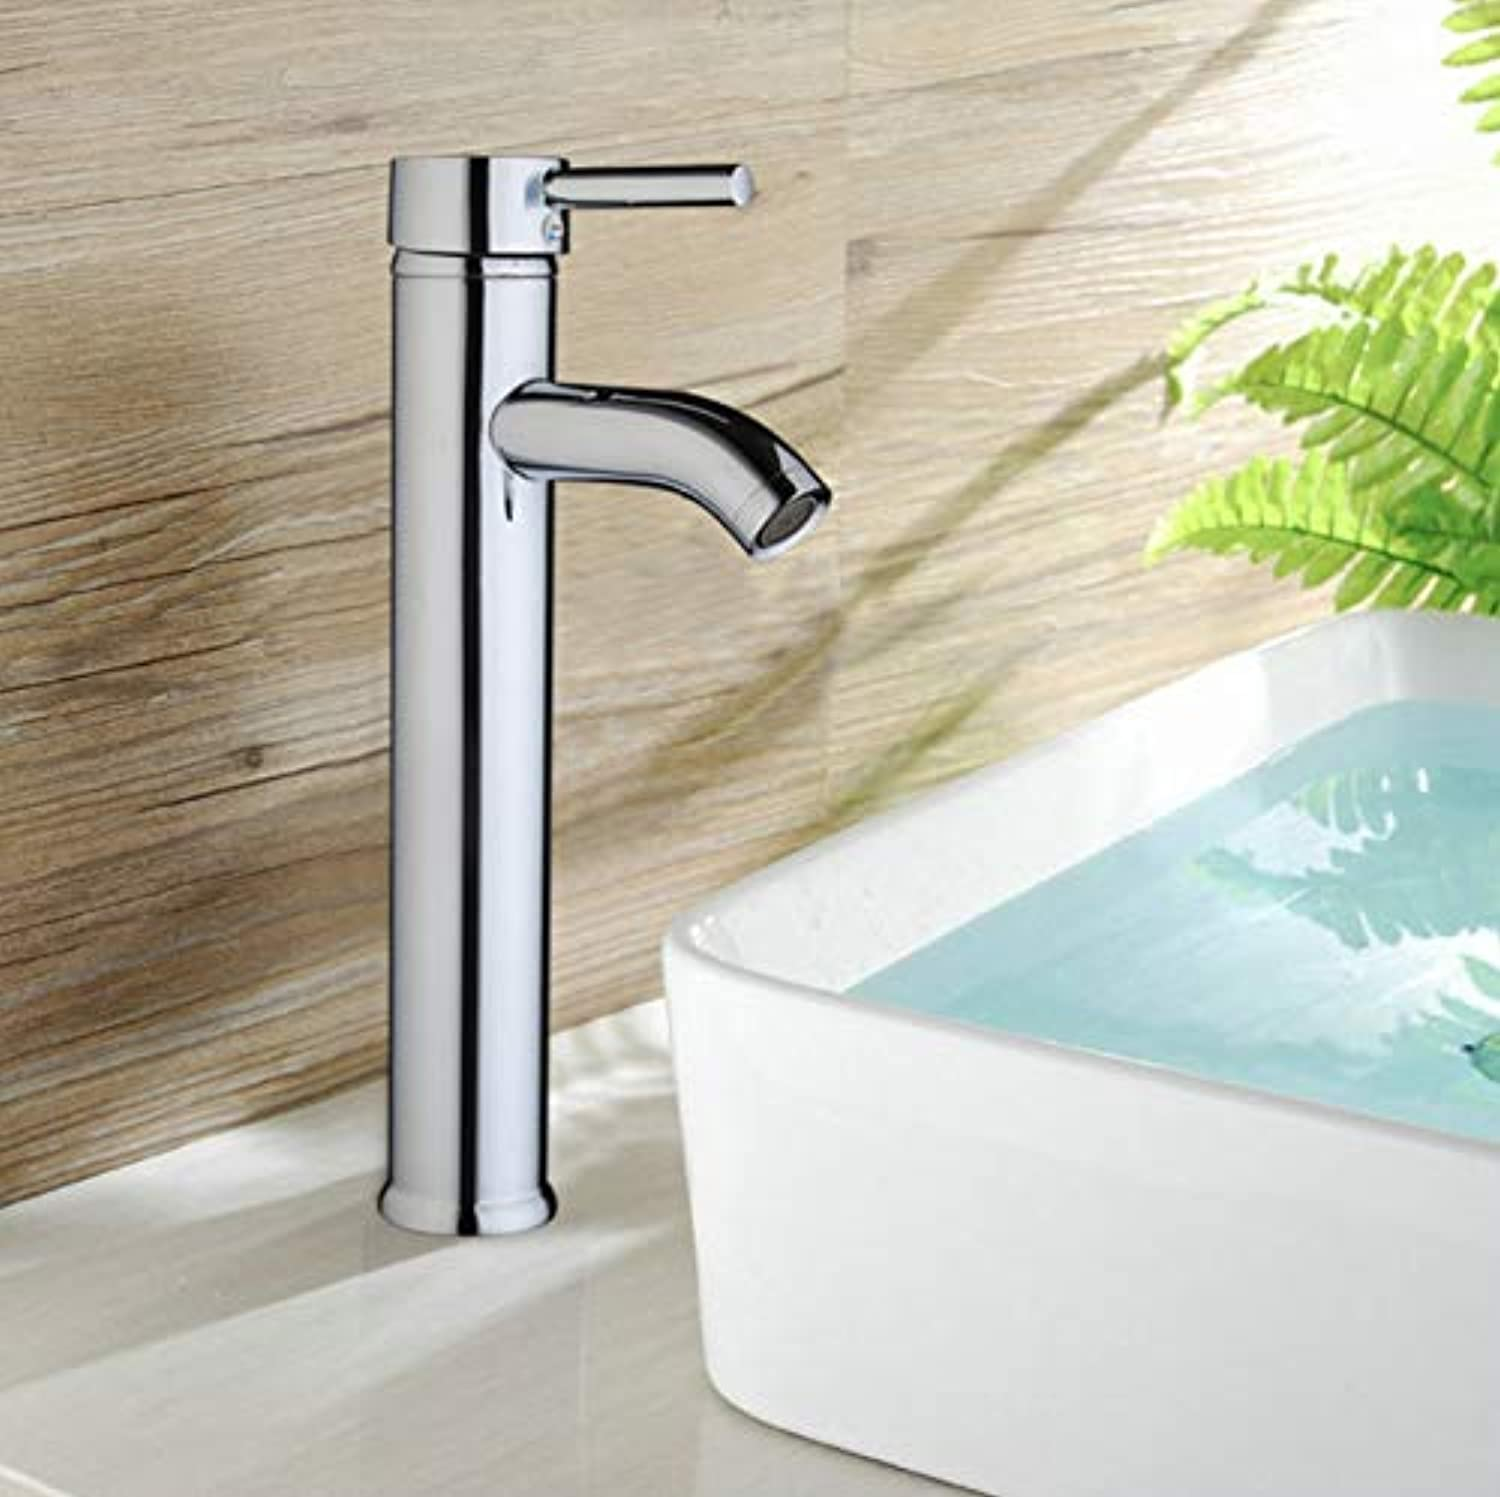 Decorry New Arrival  Single Handle Faucet Bathroom Basin Sink Mixer Chrome Polished Basin Faucet Deck Mounted Faucet torneira